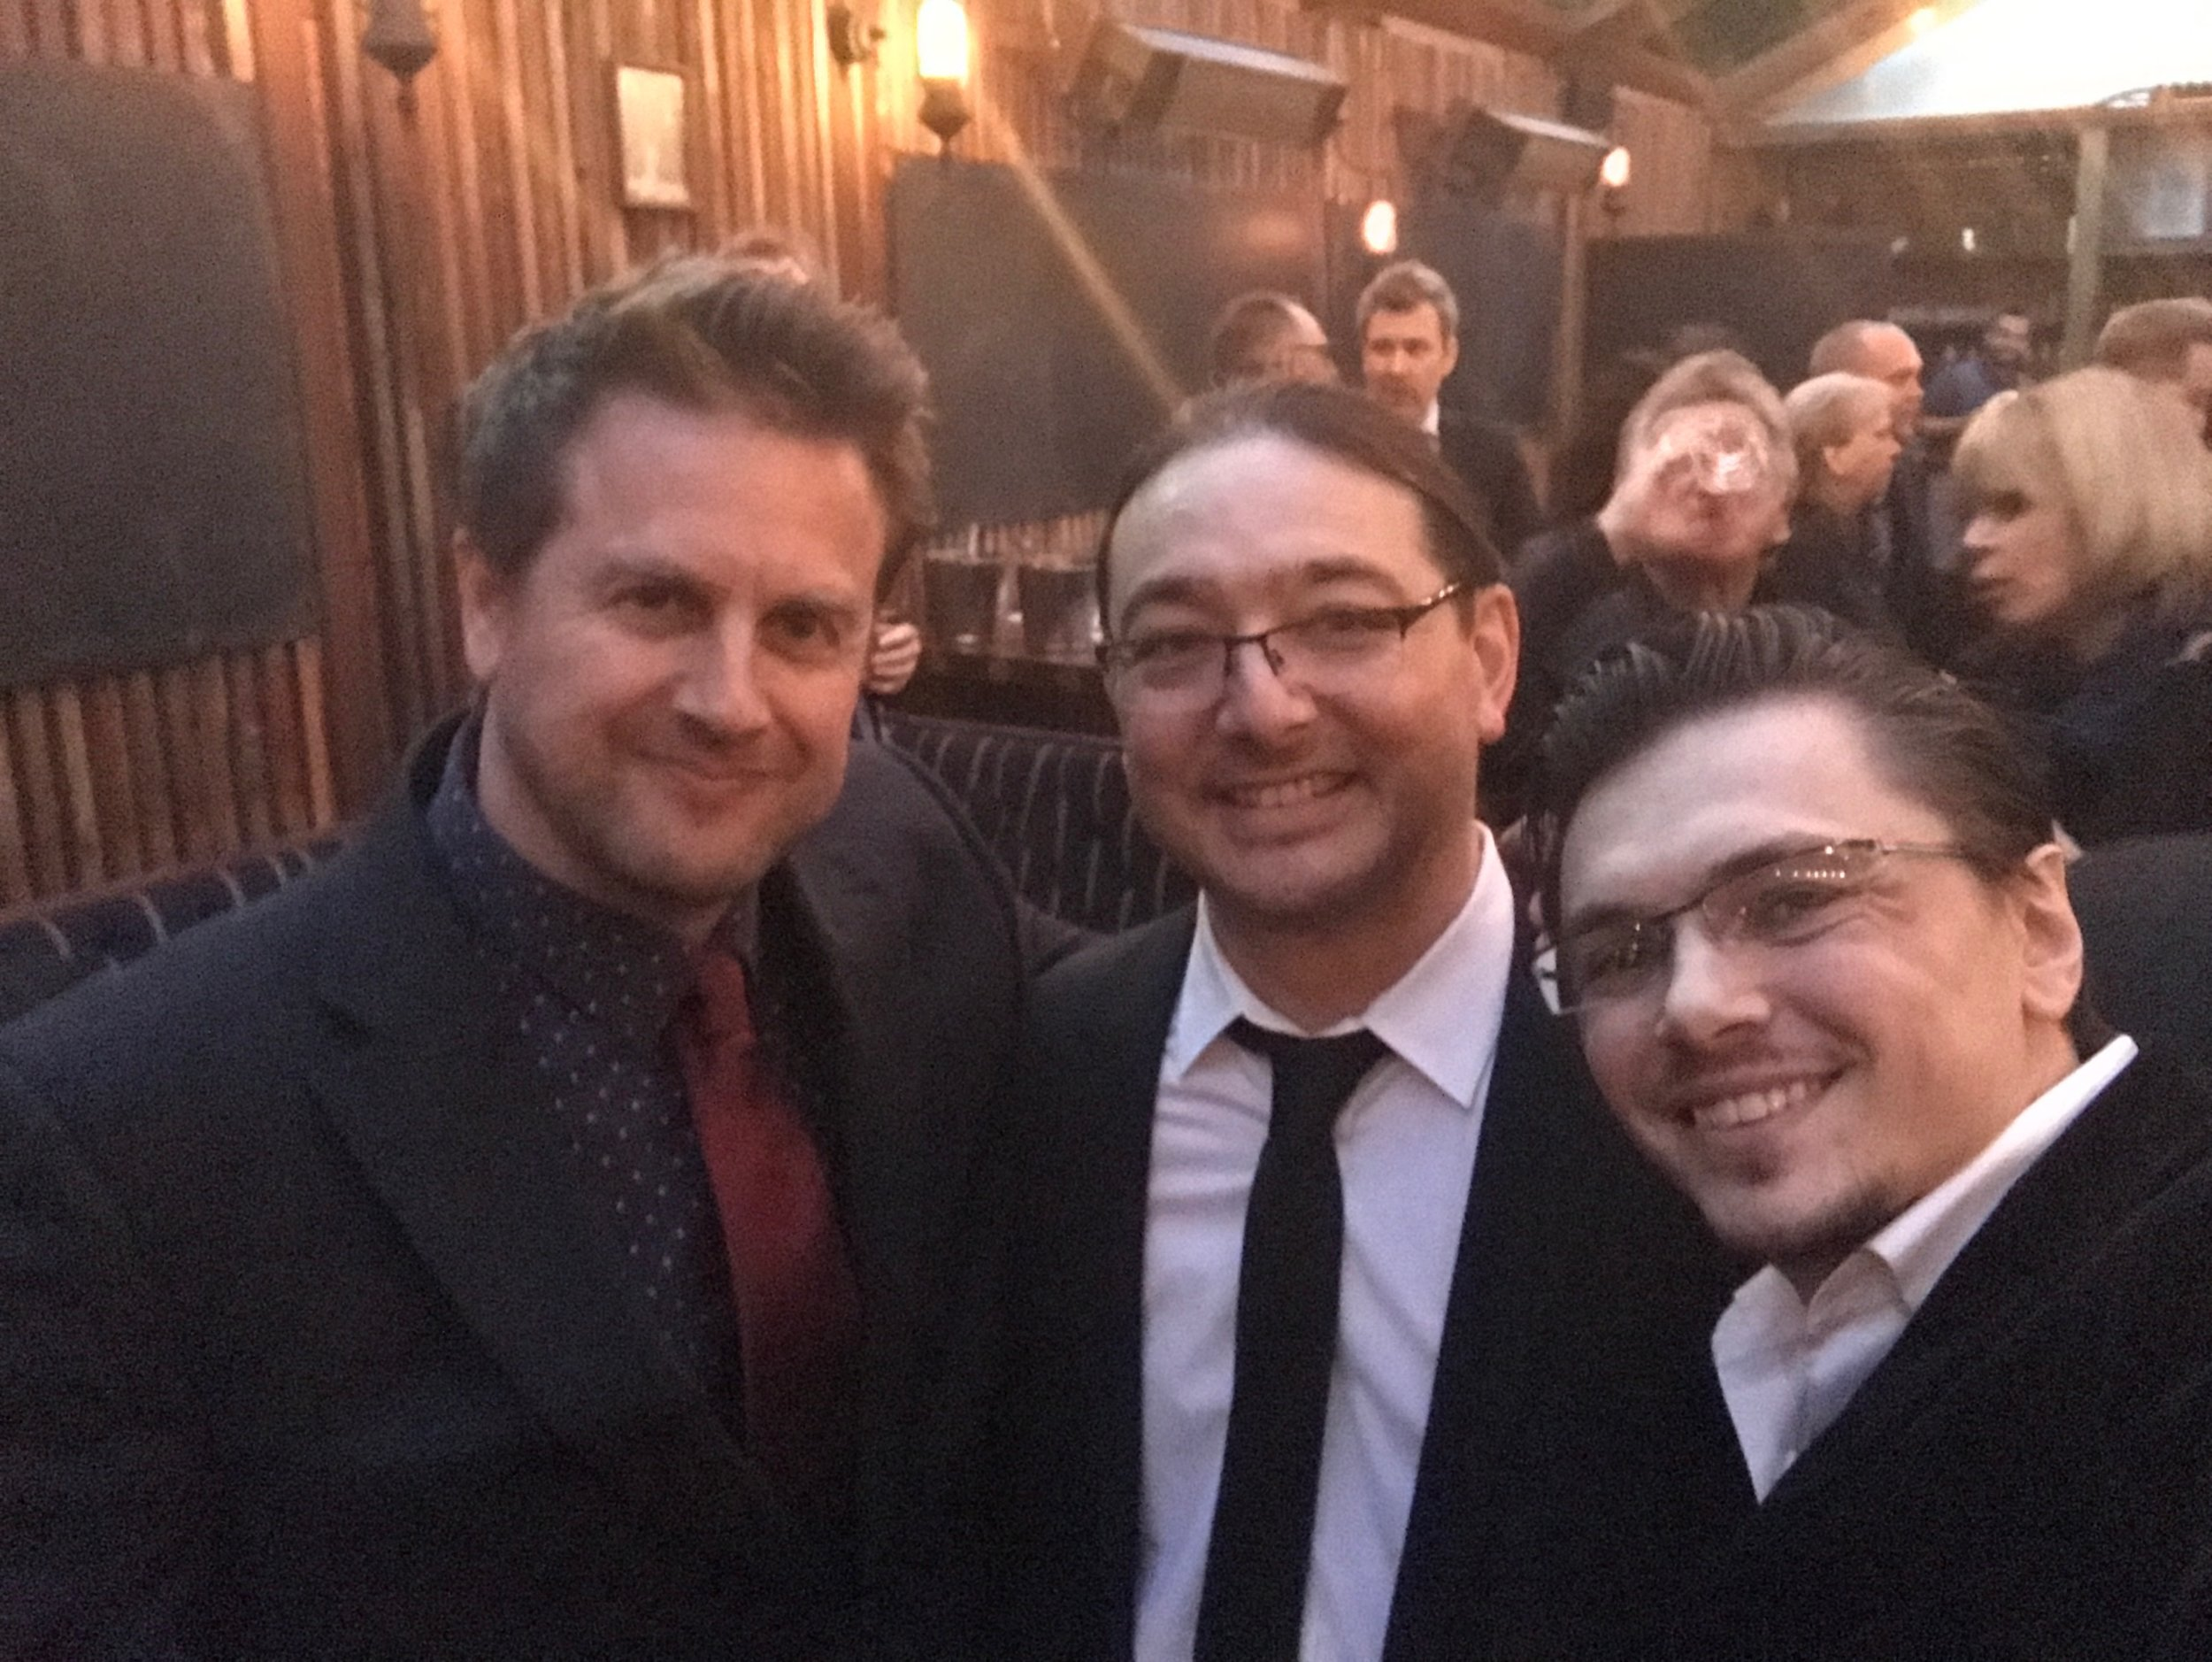 With composer and SCL administrator Mark Smythe, and composer Ken Jacobsen